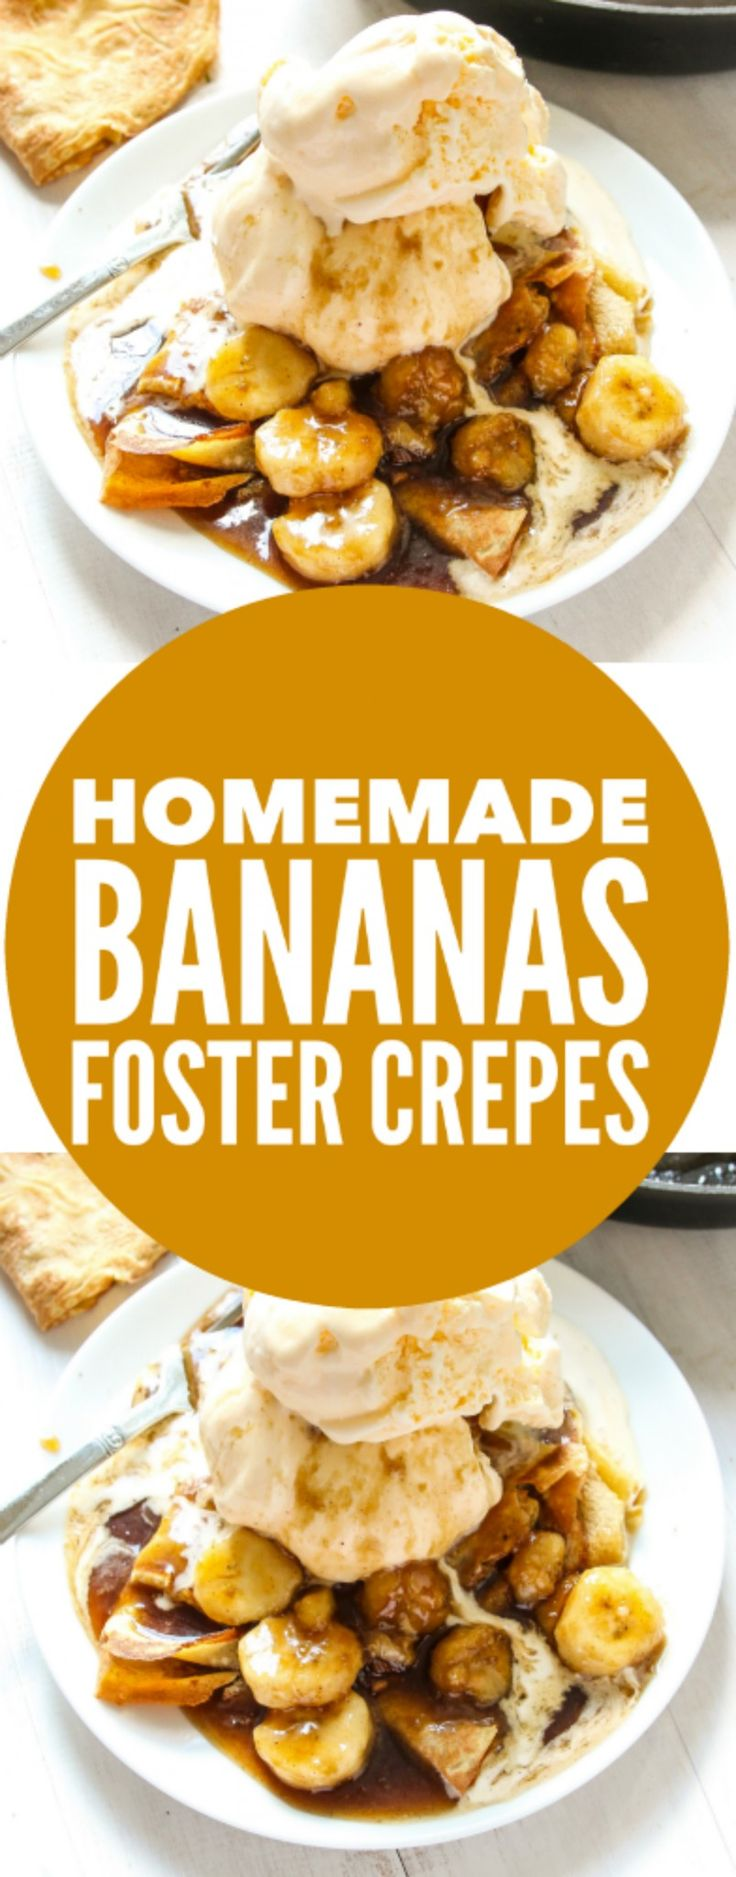 Homemade Bananas Foster Crepes - Layers of Happiness #ad #sunsoutspoonsout